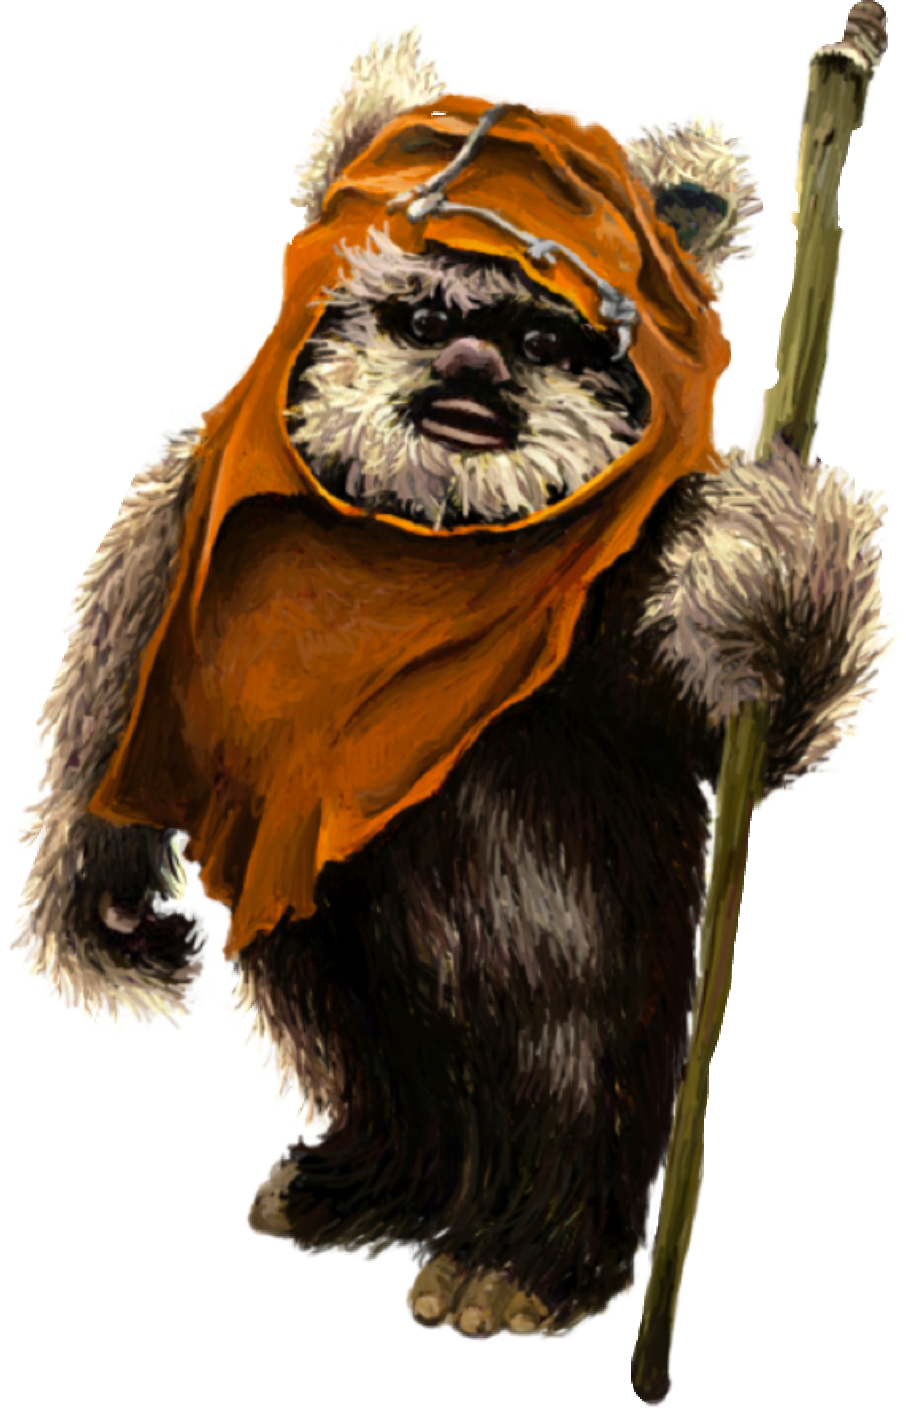 image royalty free download Freetoedit sticker by bianca. Chewbacca clipart ewok